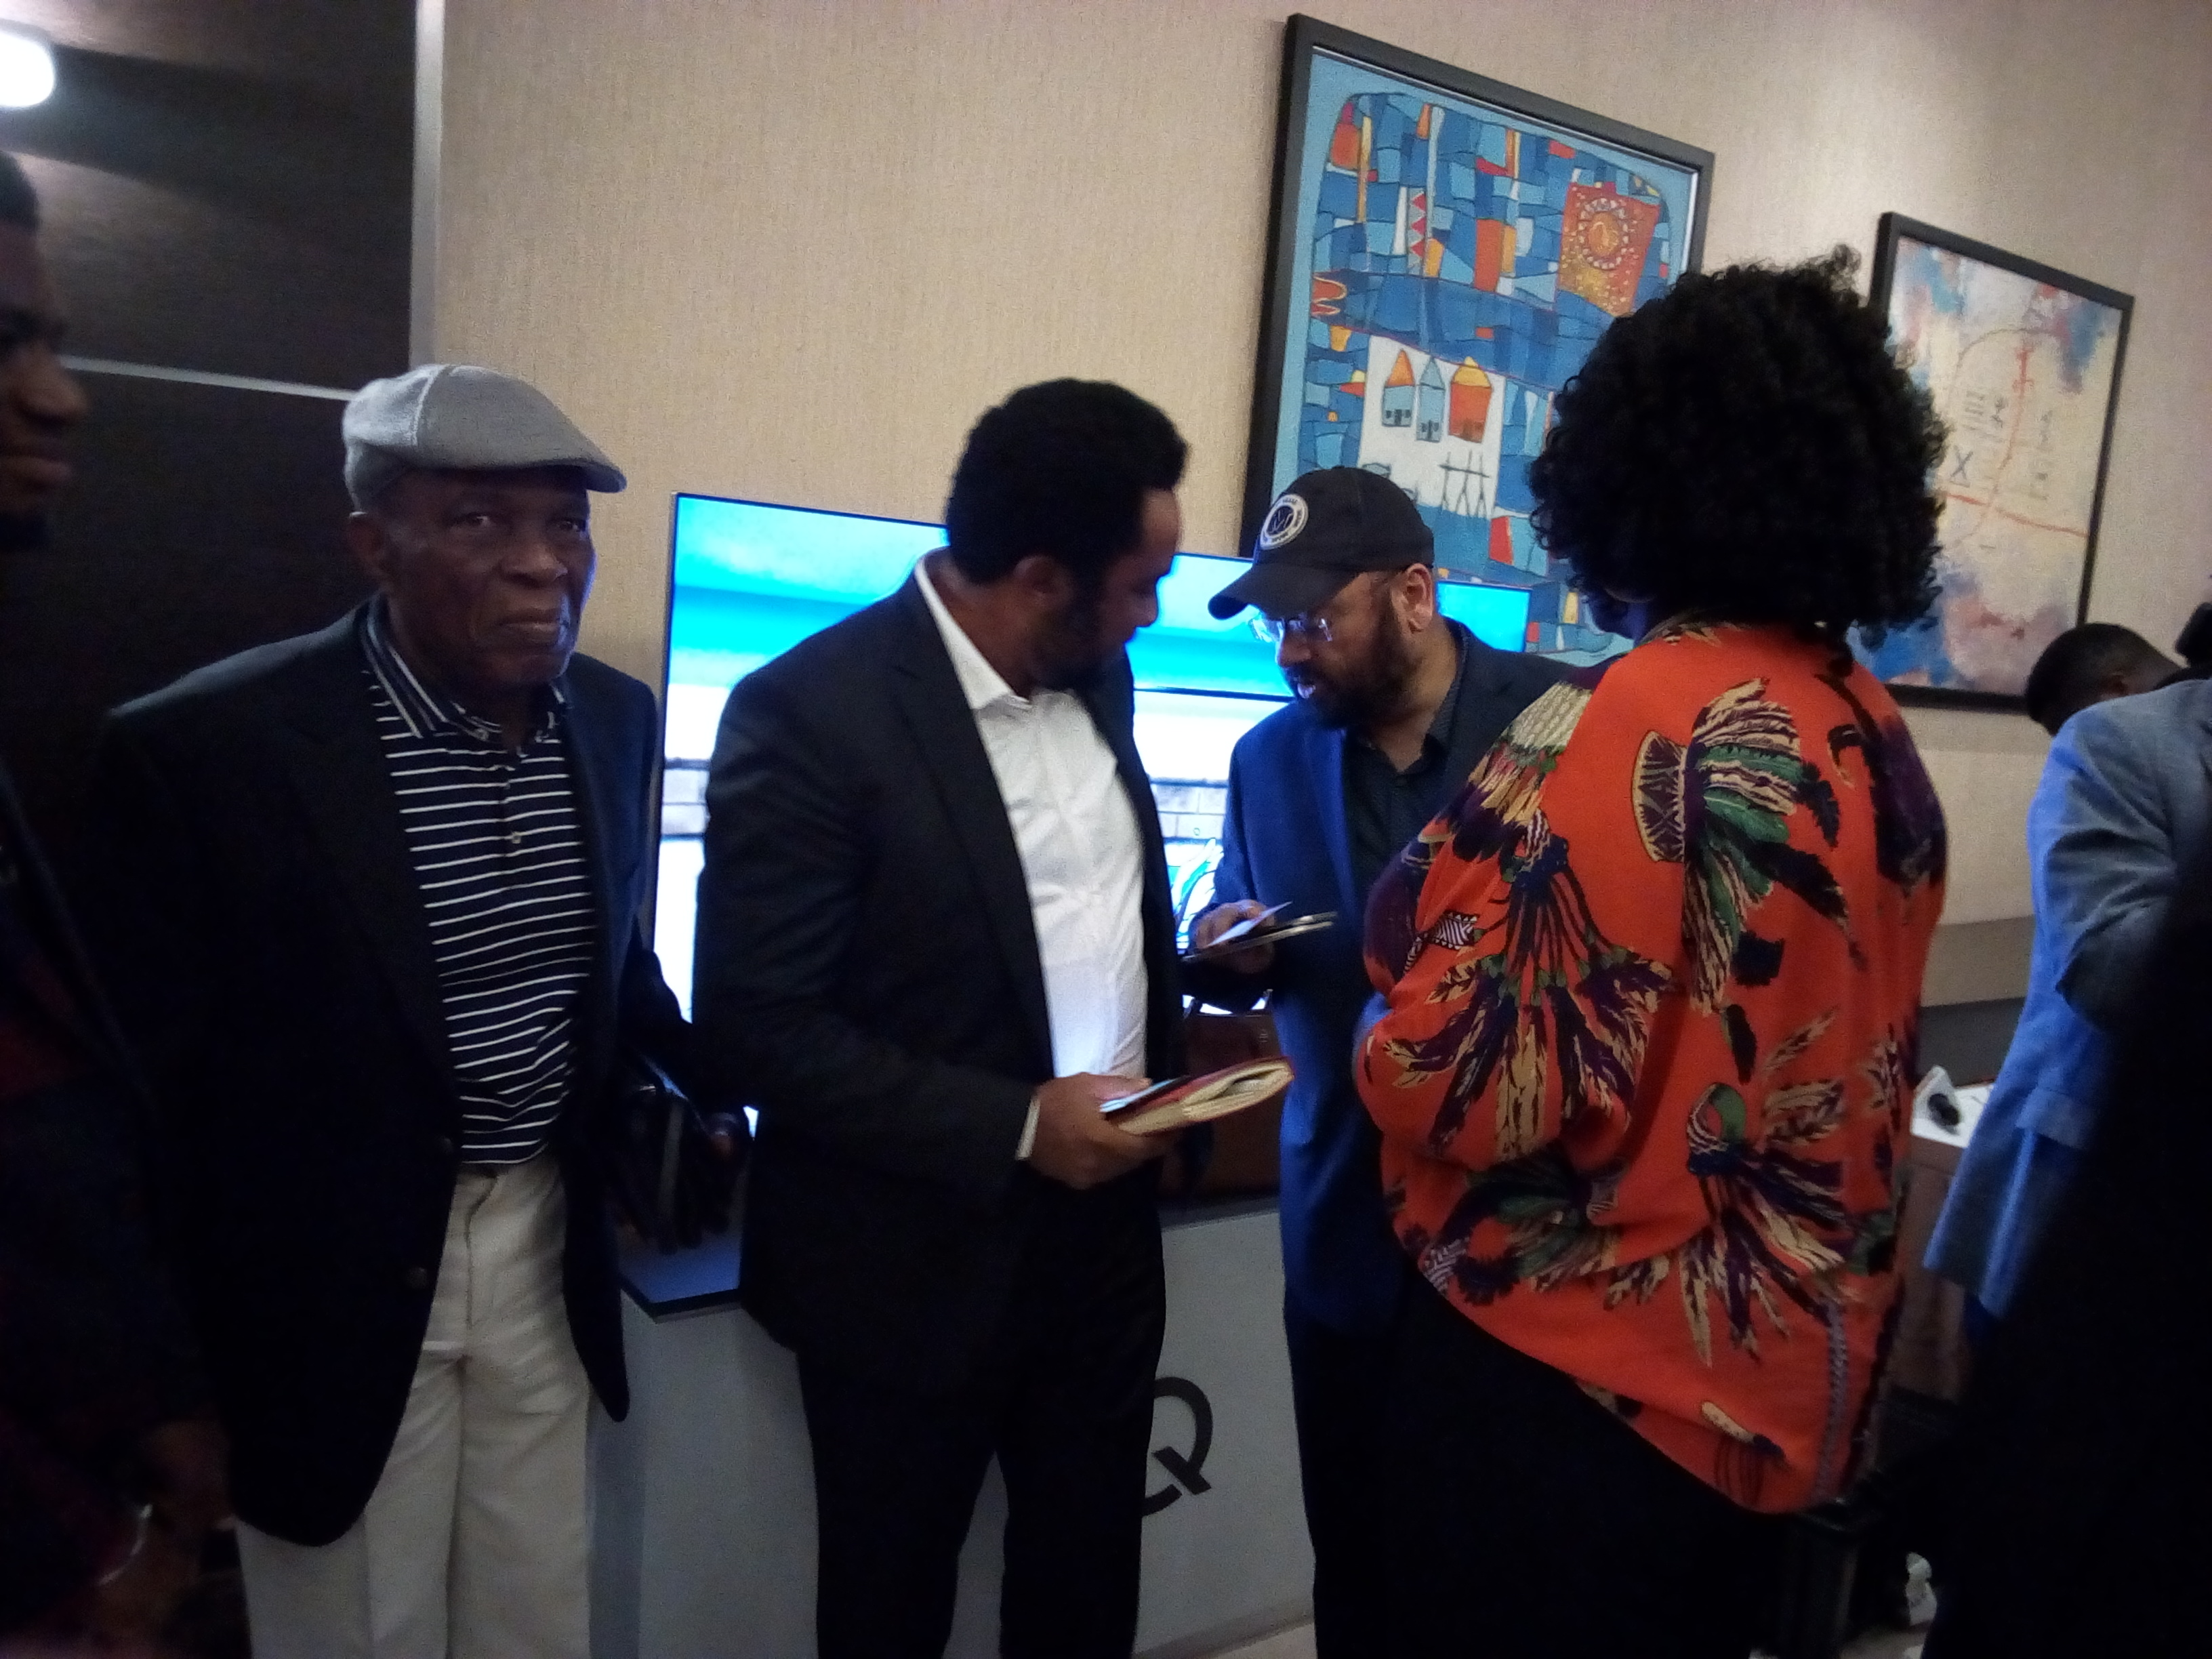 Samsung Note 8 Event pictures